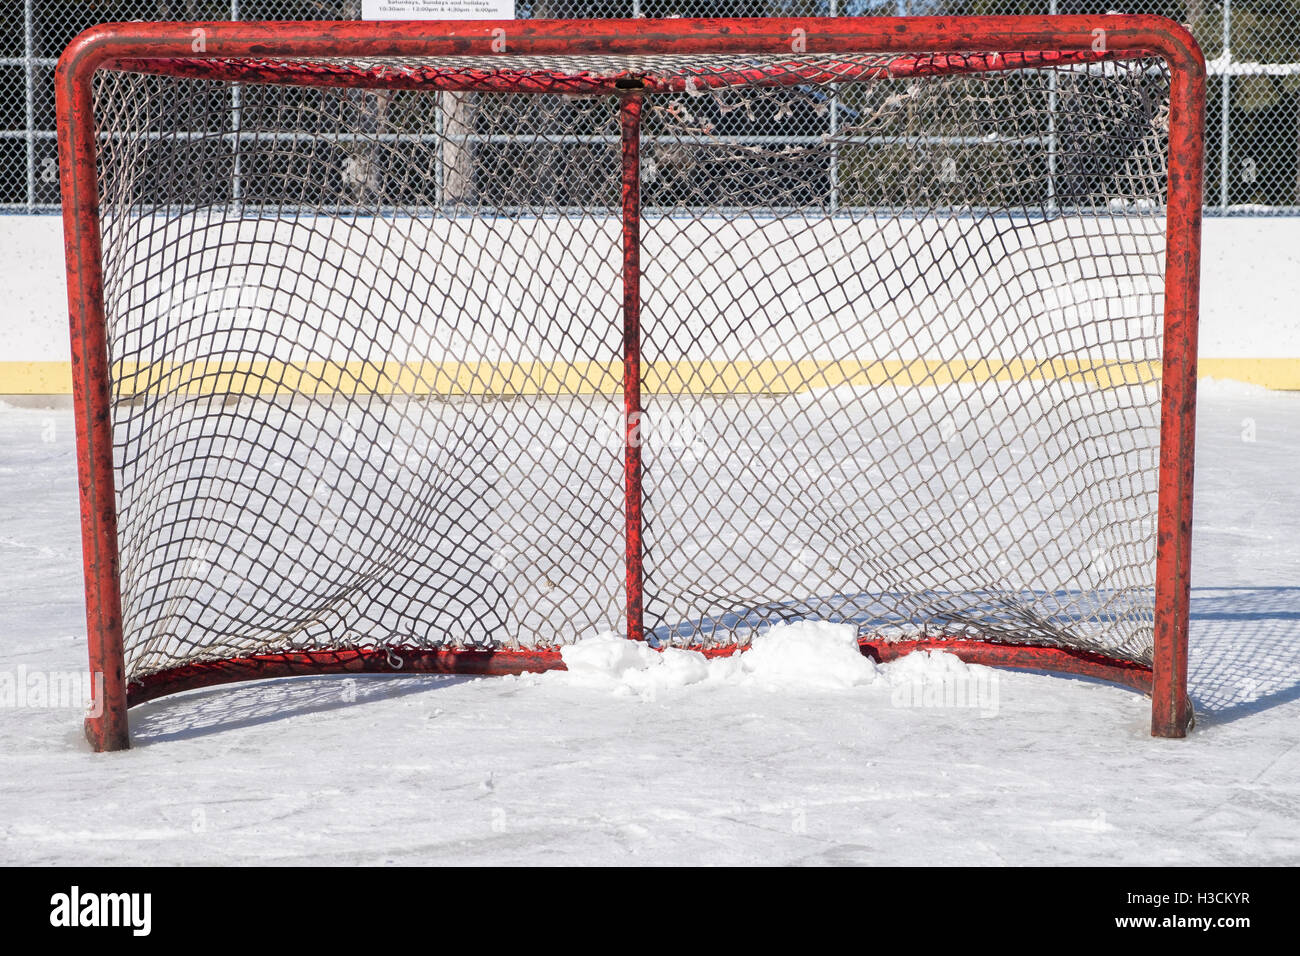 A close view of an ice hockey net it's posts black marked by pucks